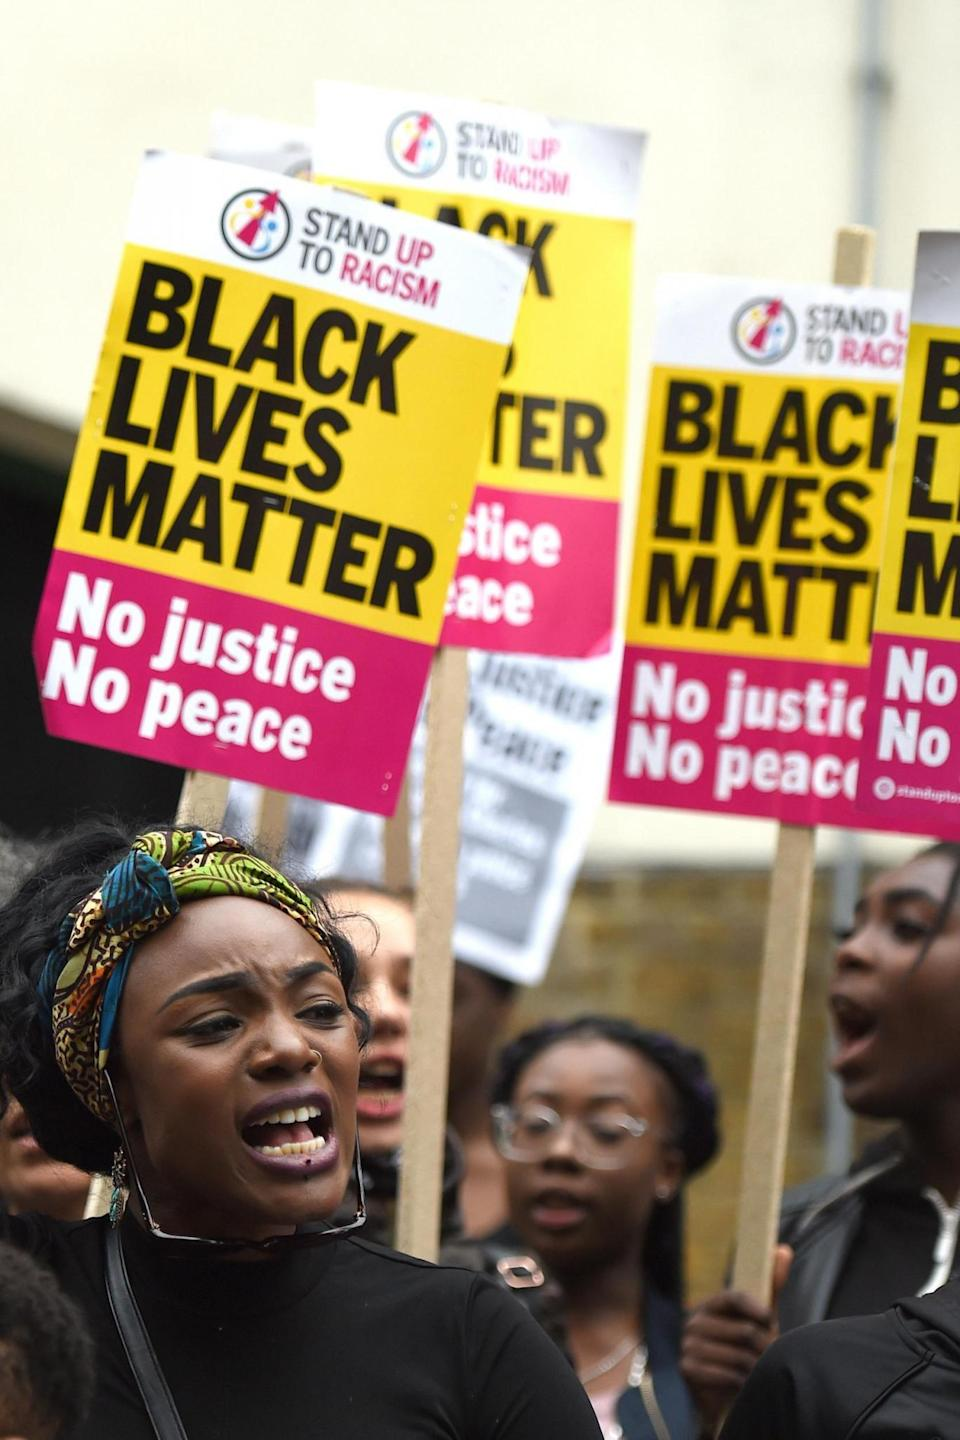 Members from Hackney Stand Up To Racism protest outside Stoke Newington Police Station. (PA)